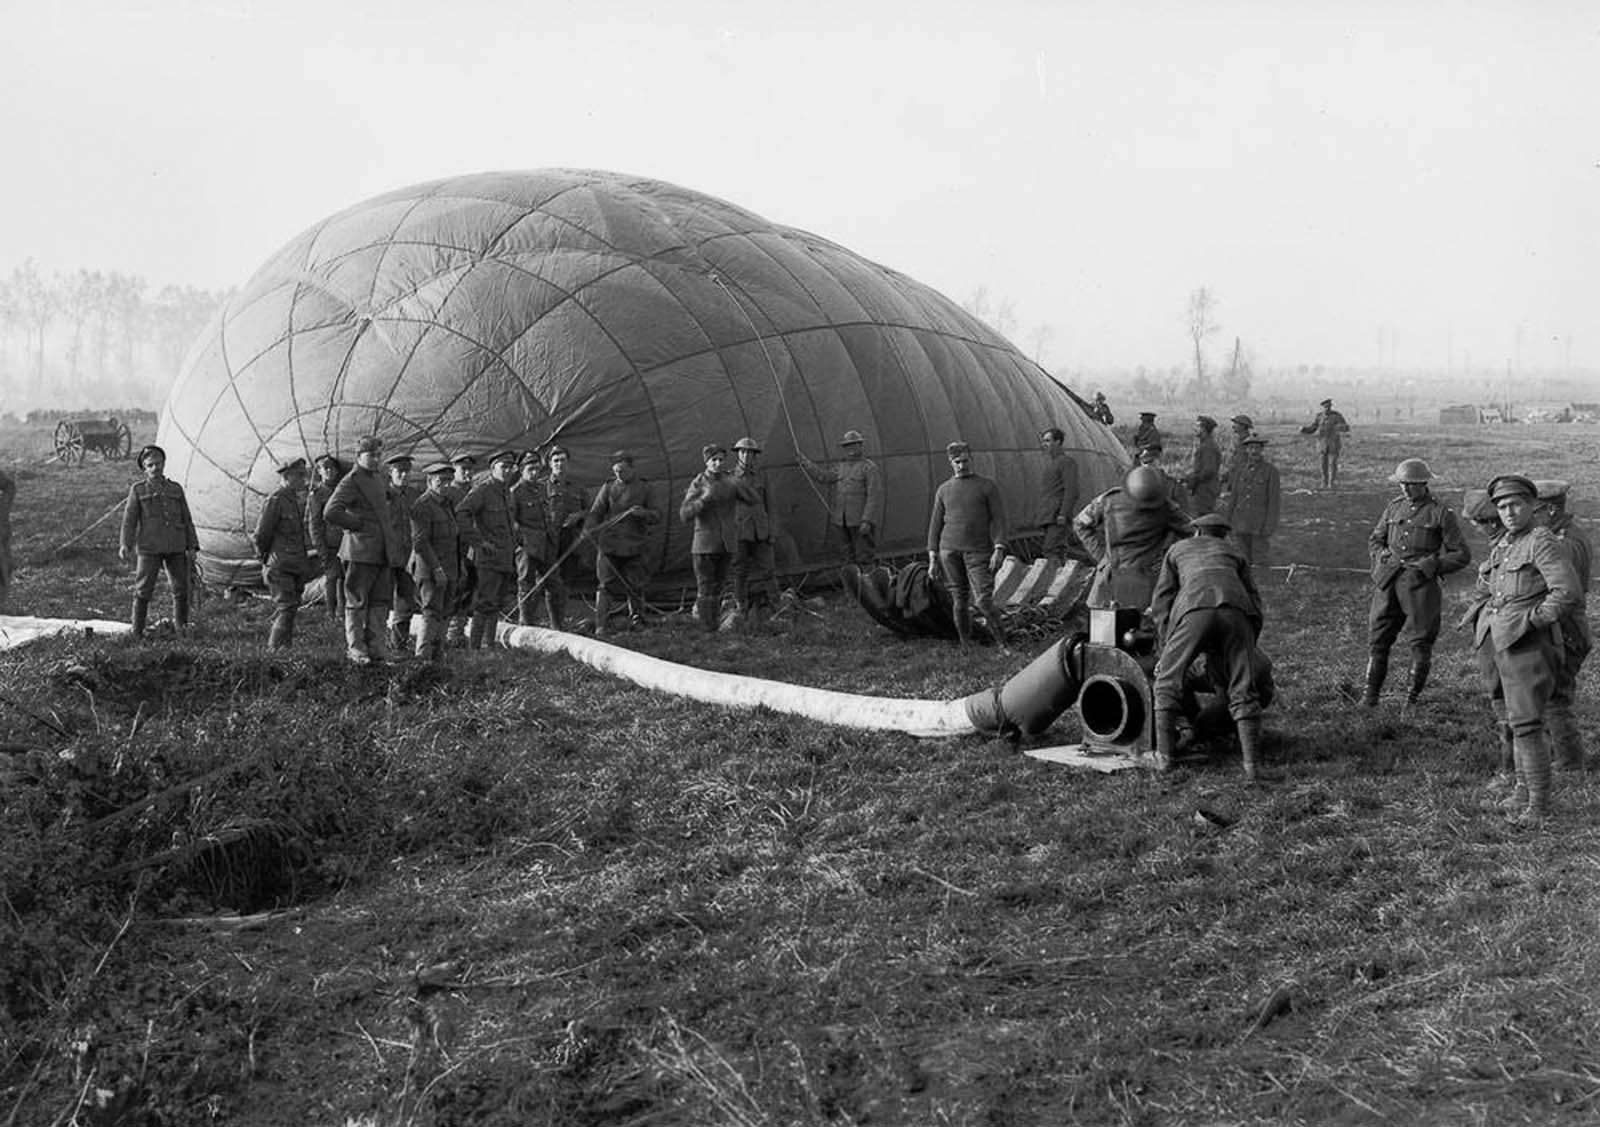 An observation balloon is inflated near Ypres, Belgium. 1917.